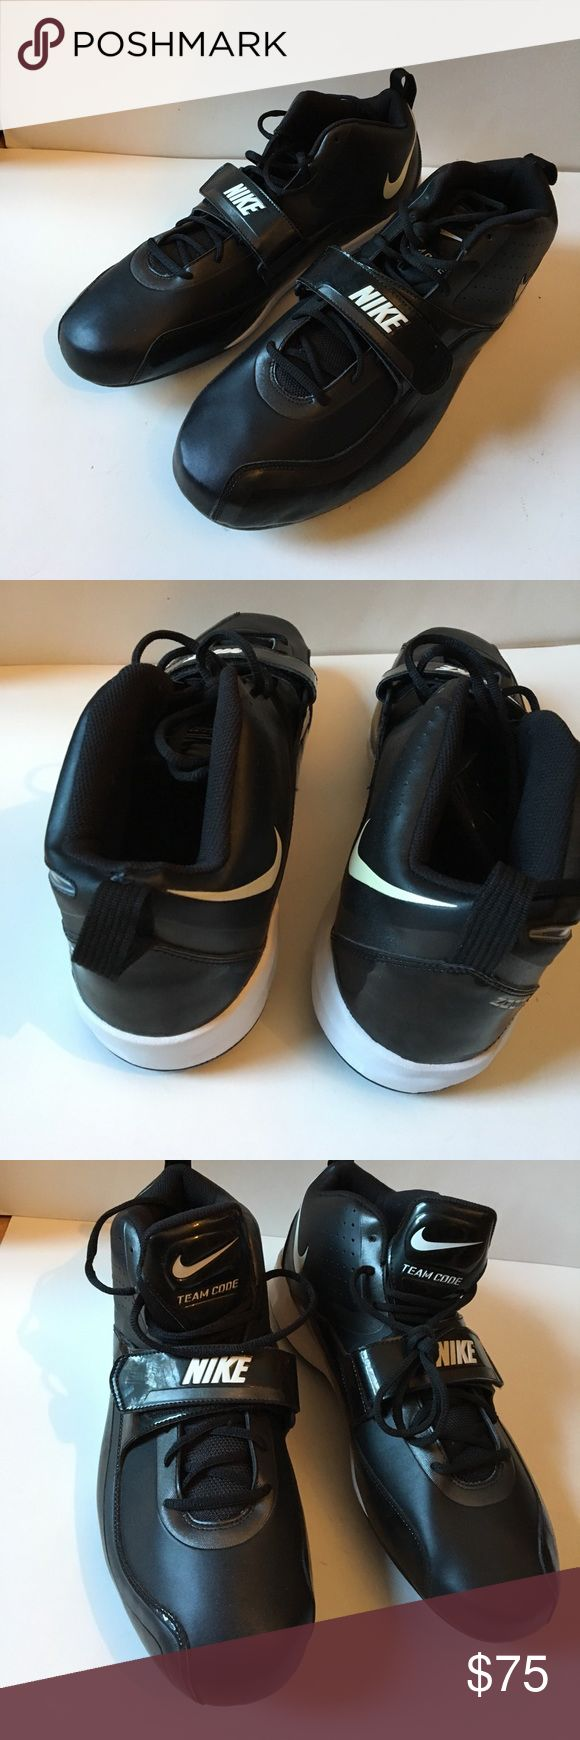 Nike Zoom Football Cleats Size 16 New Very Comfy Size 16 Nike Zoom Cleats Never worn Brand New Just need To buy Cleats for bottoms depending on which turf you will wear them on. Easy to buy online. Great Football shoe Great for Football practice Nike Shoes Athletic Shoes